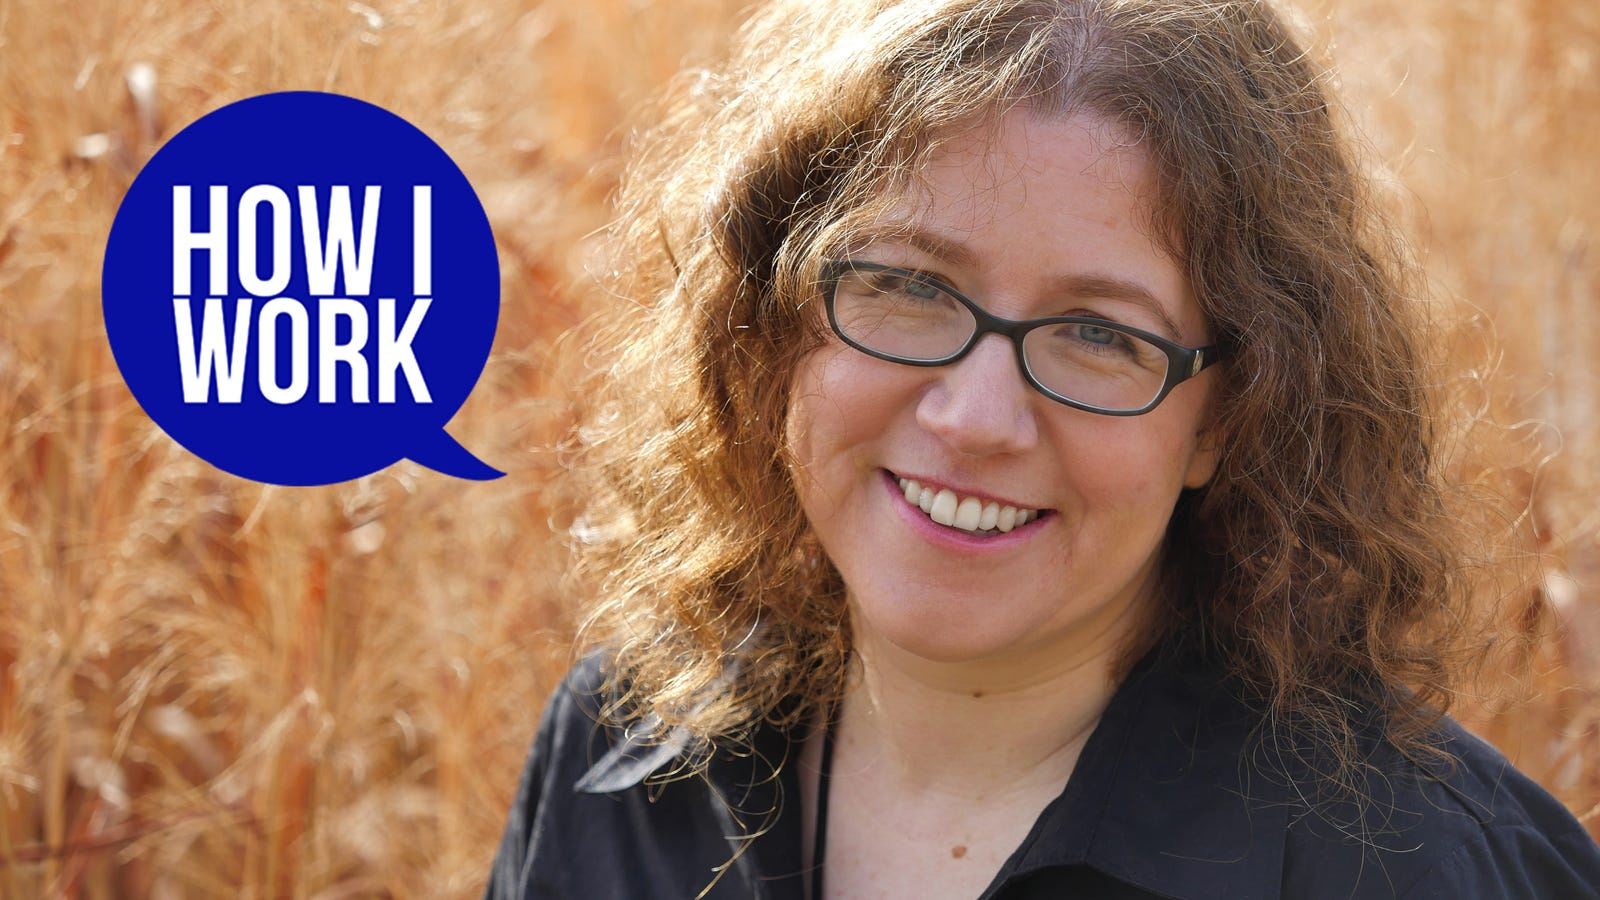 I'm Author Sarah Pinsker, and This Is How I Work